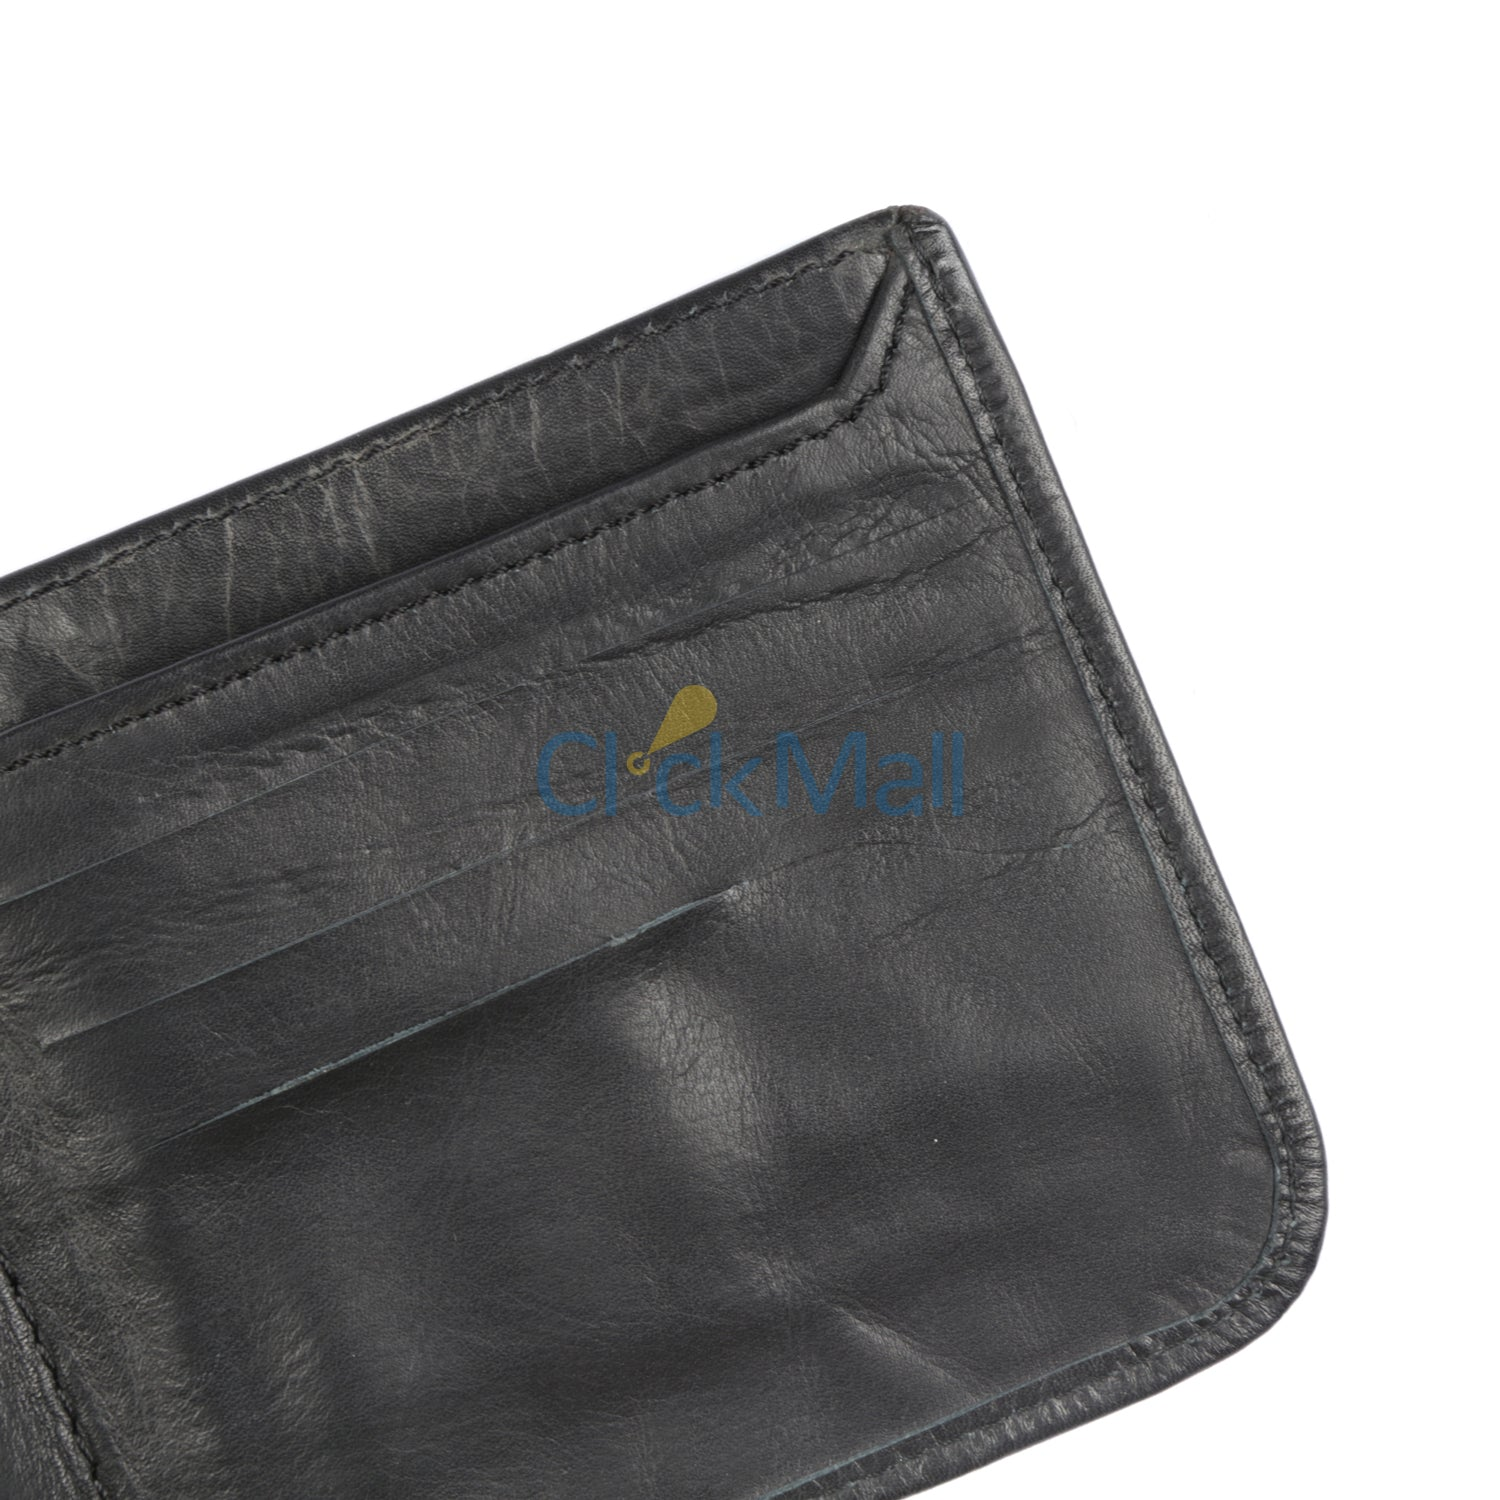 Sheikh Leather Black Leather Wallet-05 SLC-COW SOFT